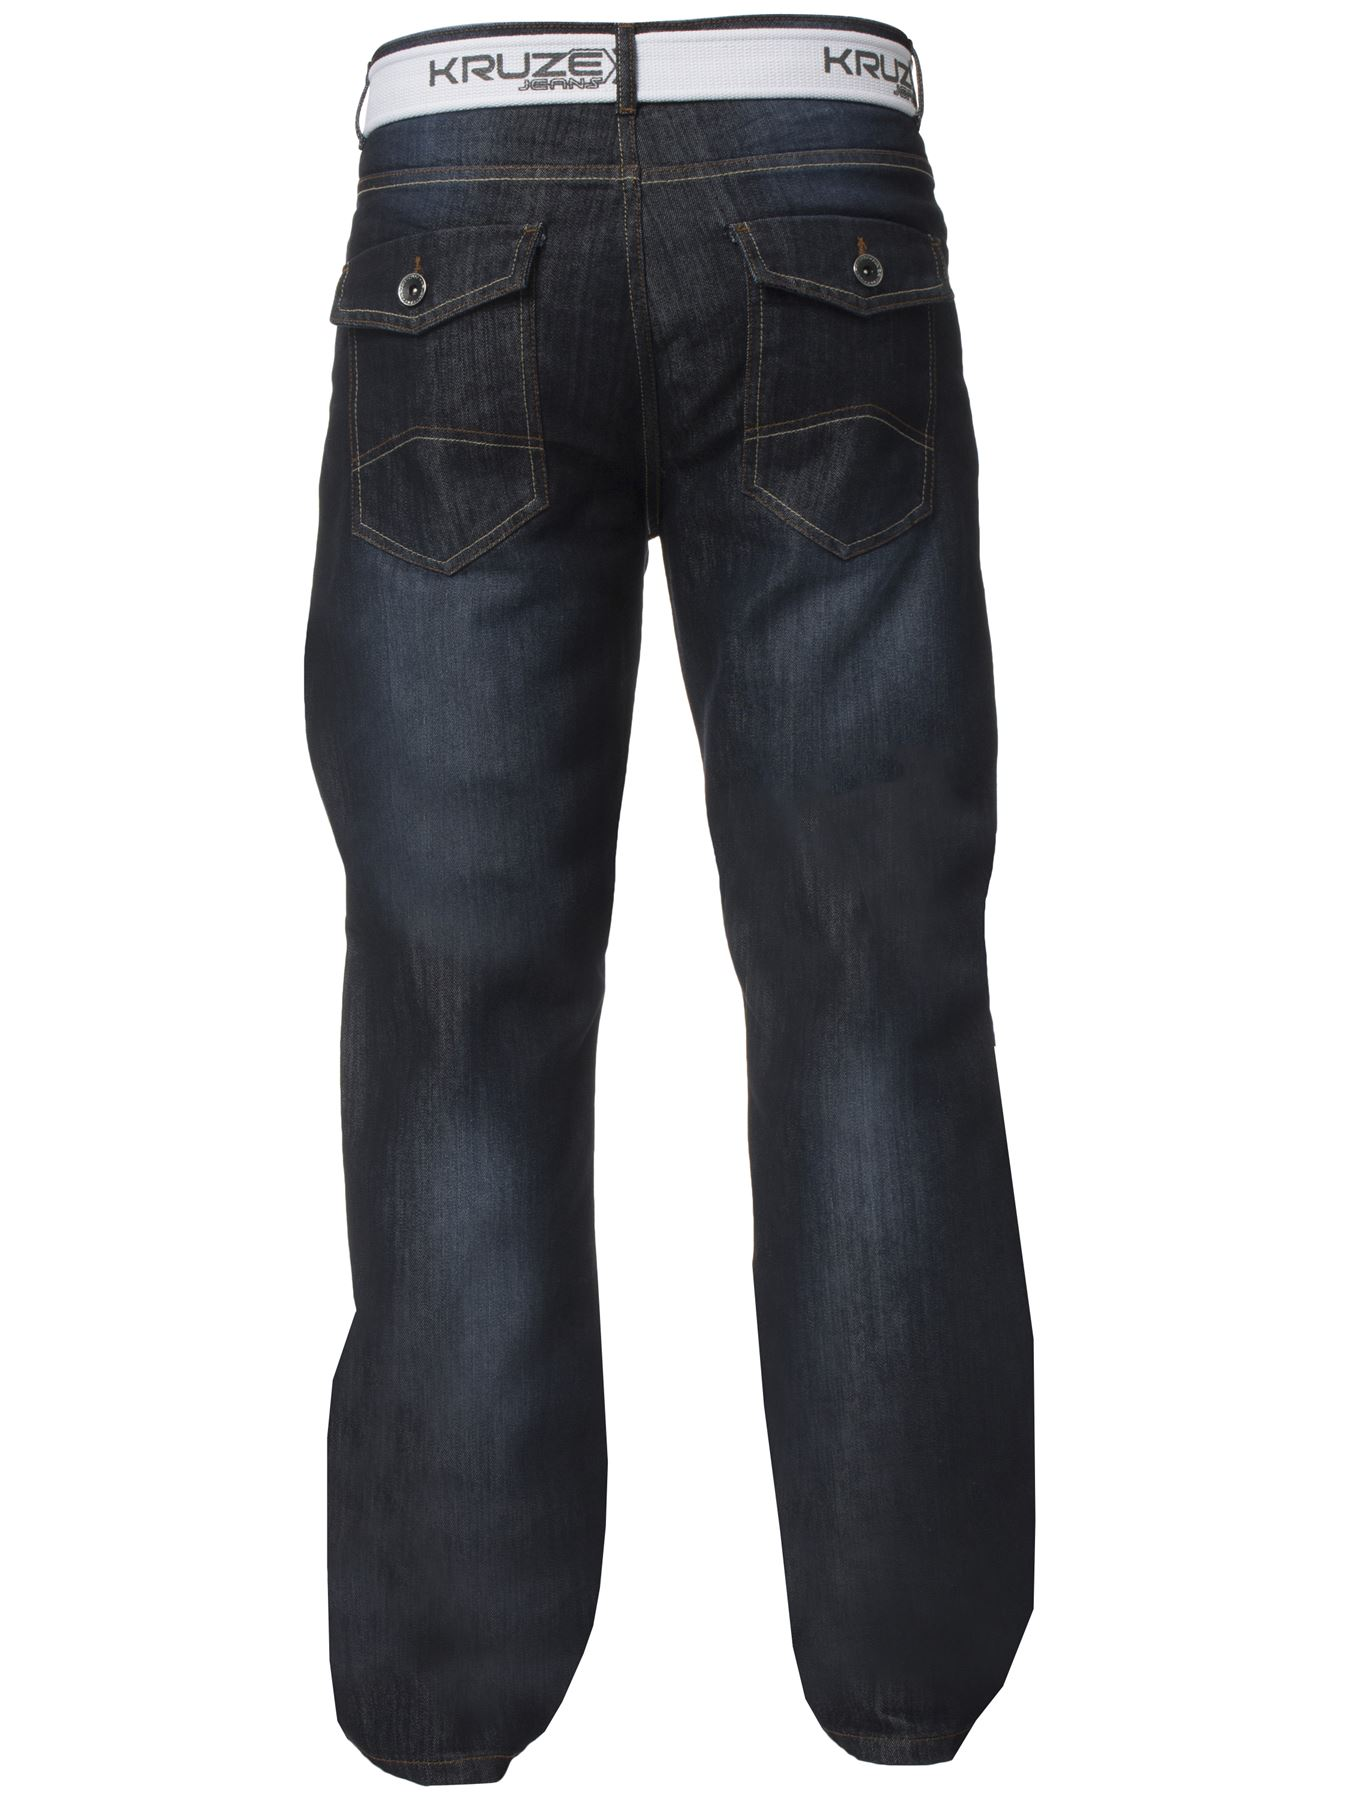 Kruze-Mens-Bootcut-Jeans-Flared-Wide-Leg-Denim-Pants-Big-Tall-King-All-Waists thumbnail 19